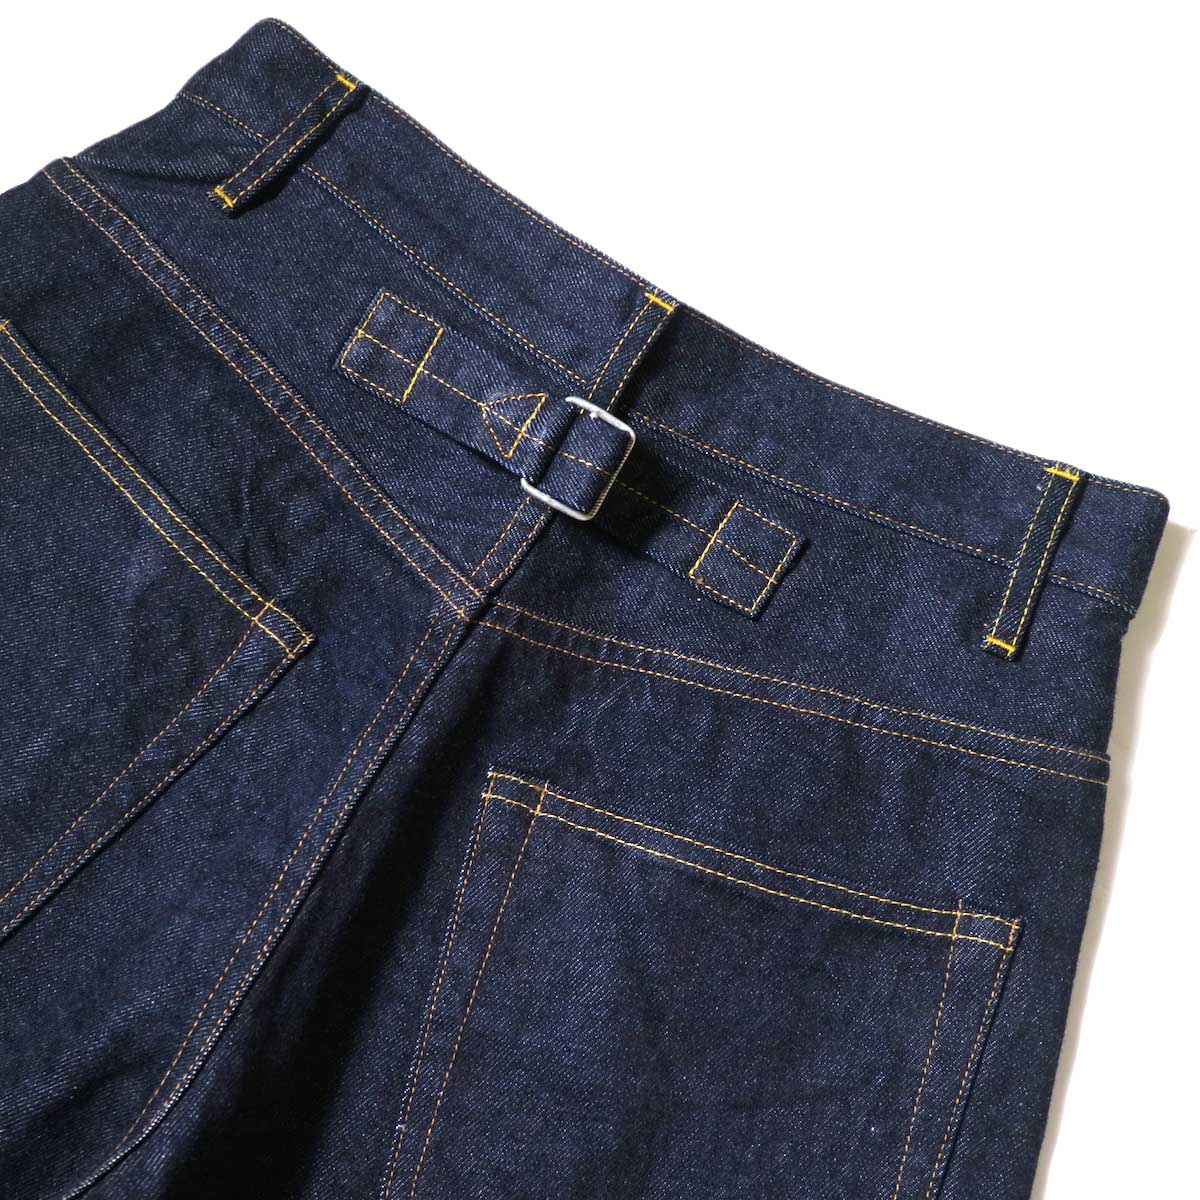 YLEVE / 13.5oz DENIM HIGH WEST WIDE (Indigo) ウエスト背面